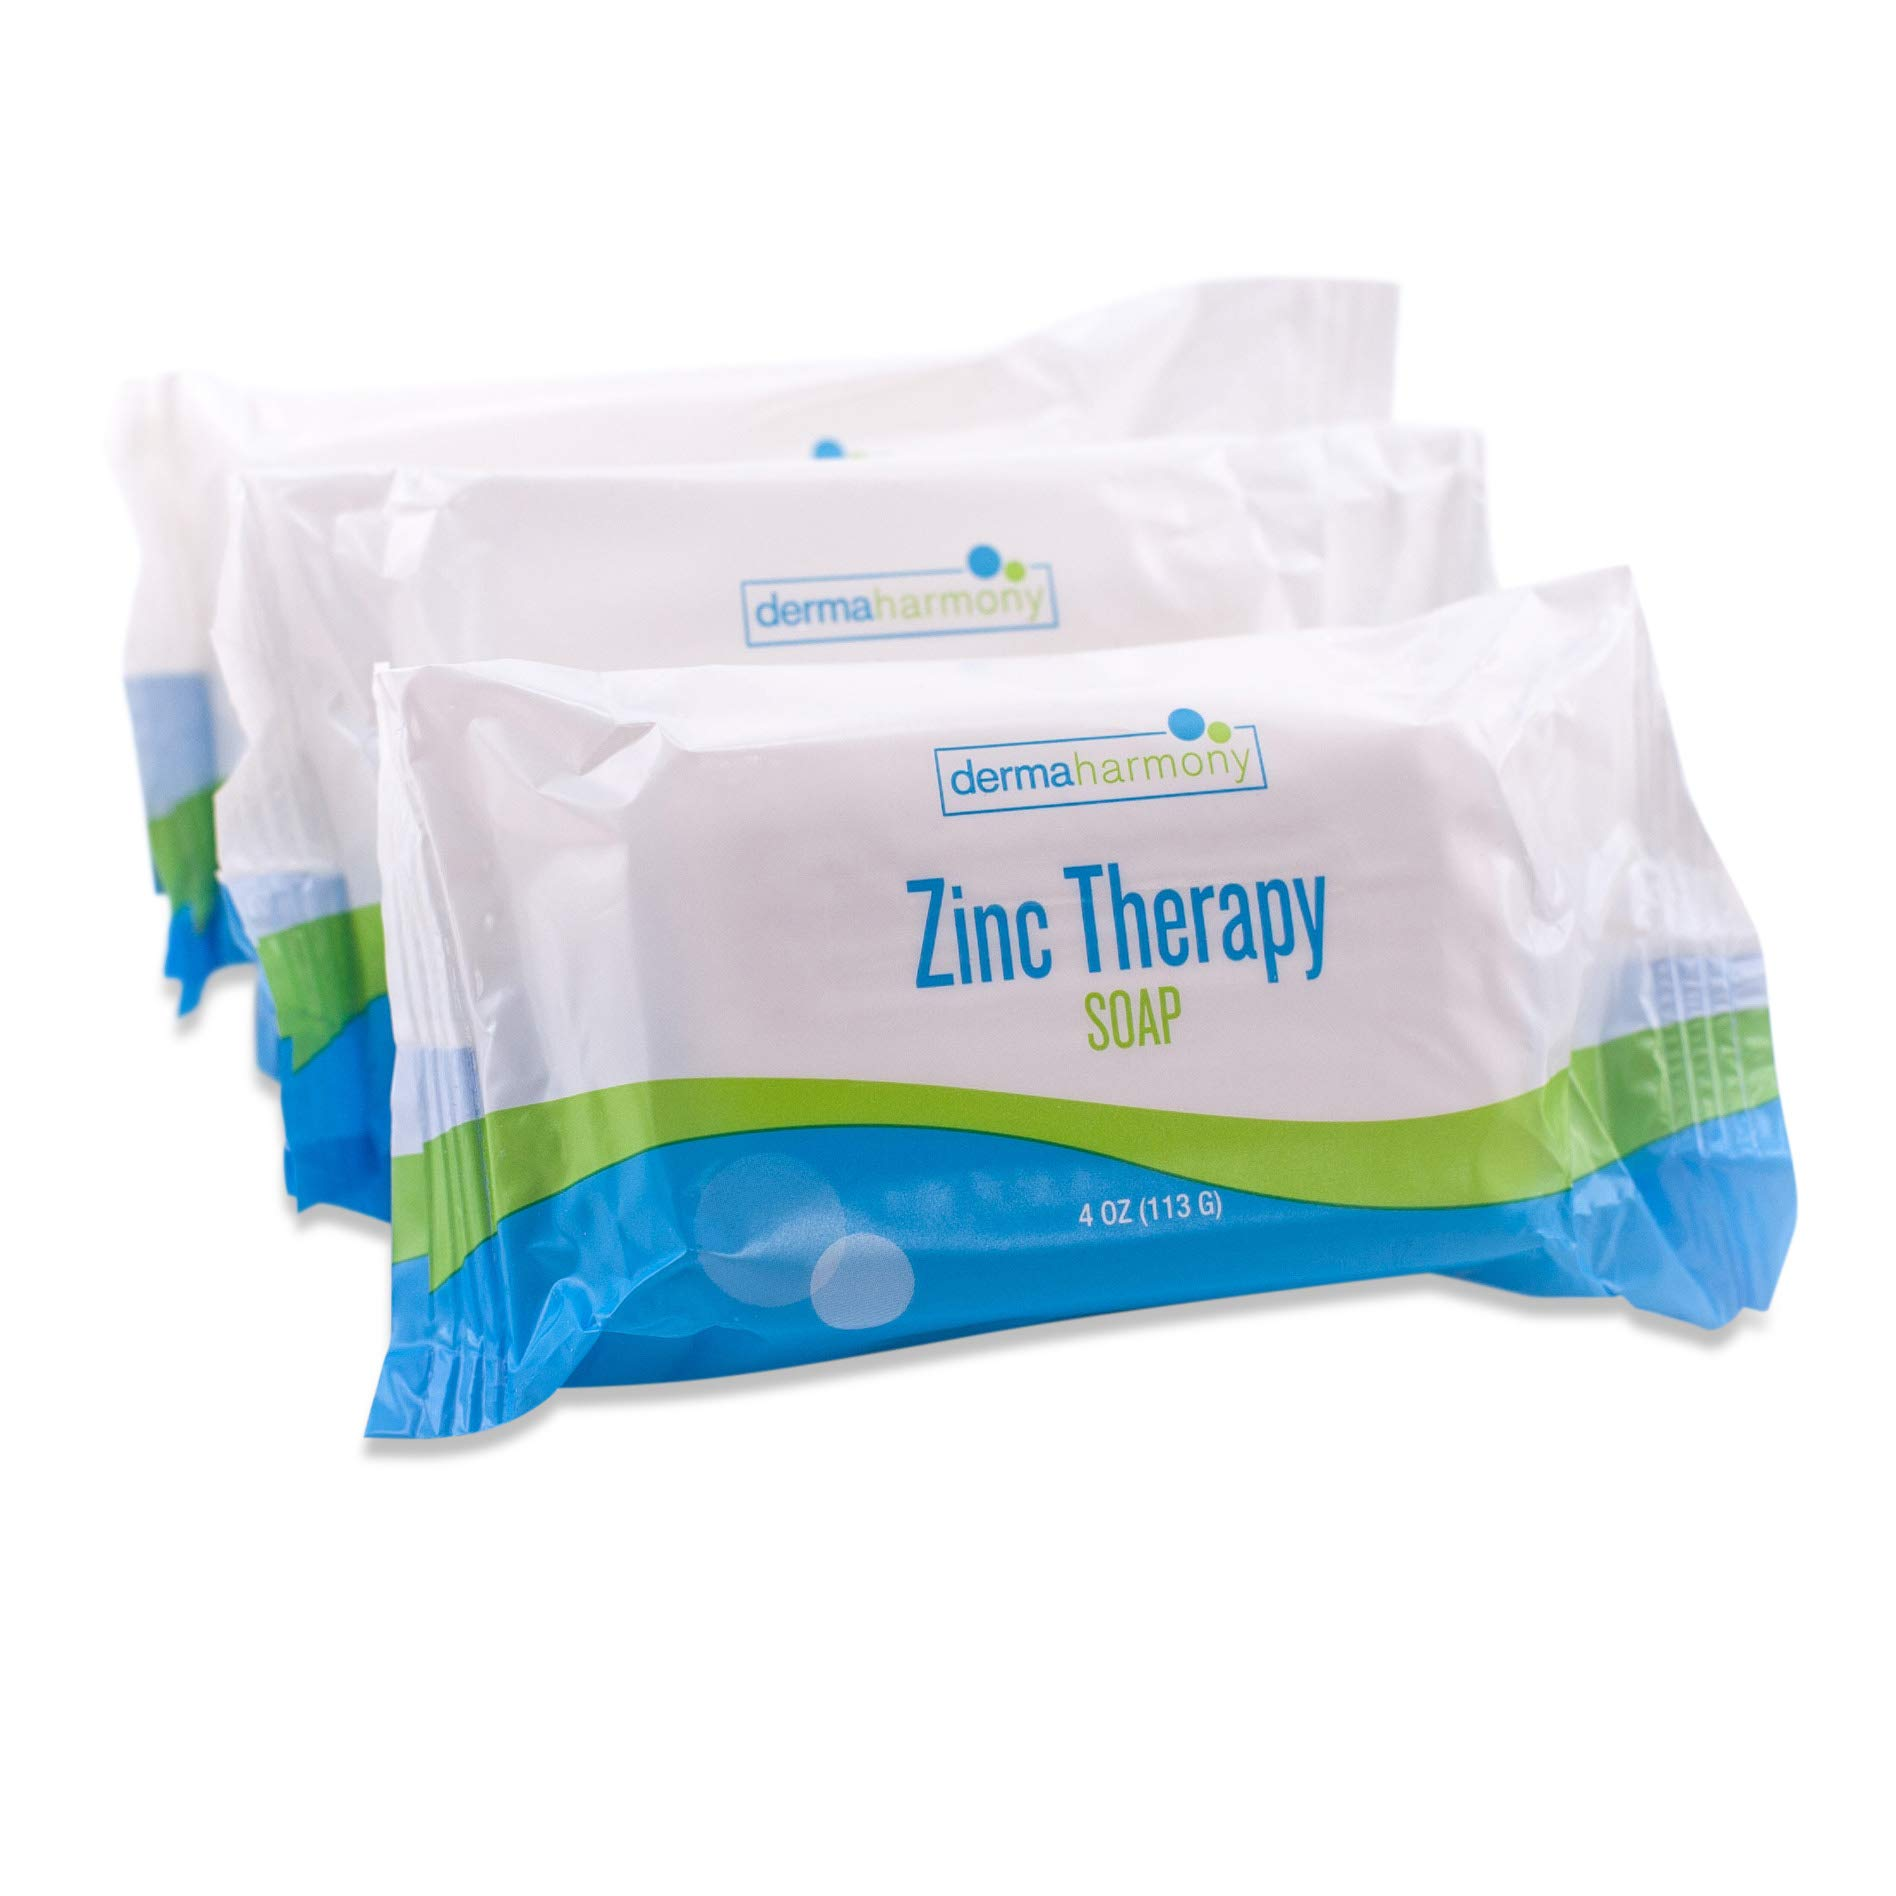 DermaHarmony Pyrithione Zinc (ZnP) Therapy Soap 4 oz Bars - 3 Pack - for Seborrhea and Dandruff by Dermaharmony